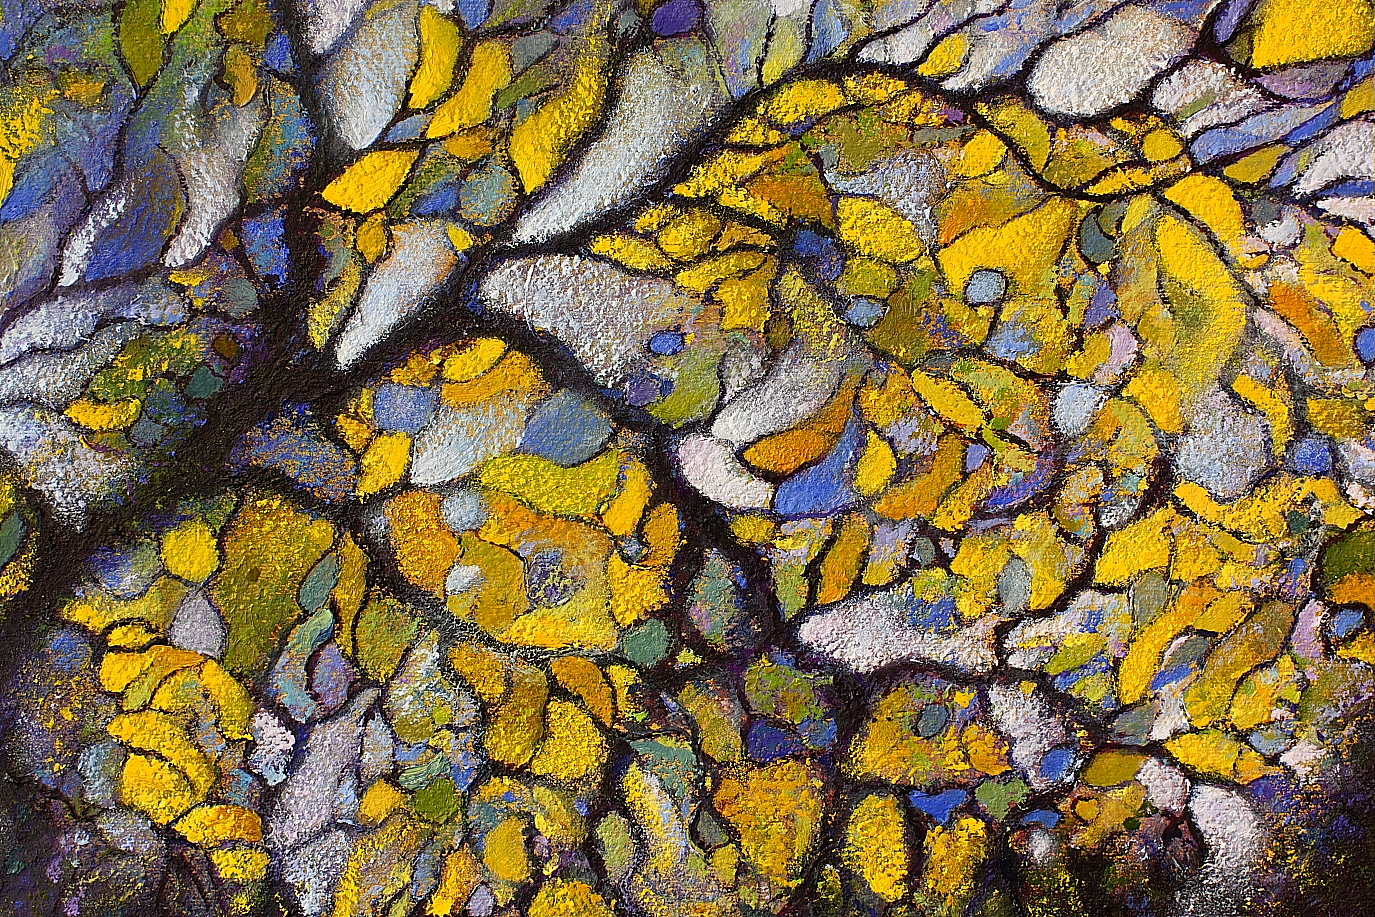 Detail of Autumnal - painted by Alan Moloney - A detailed view of Autumnal